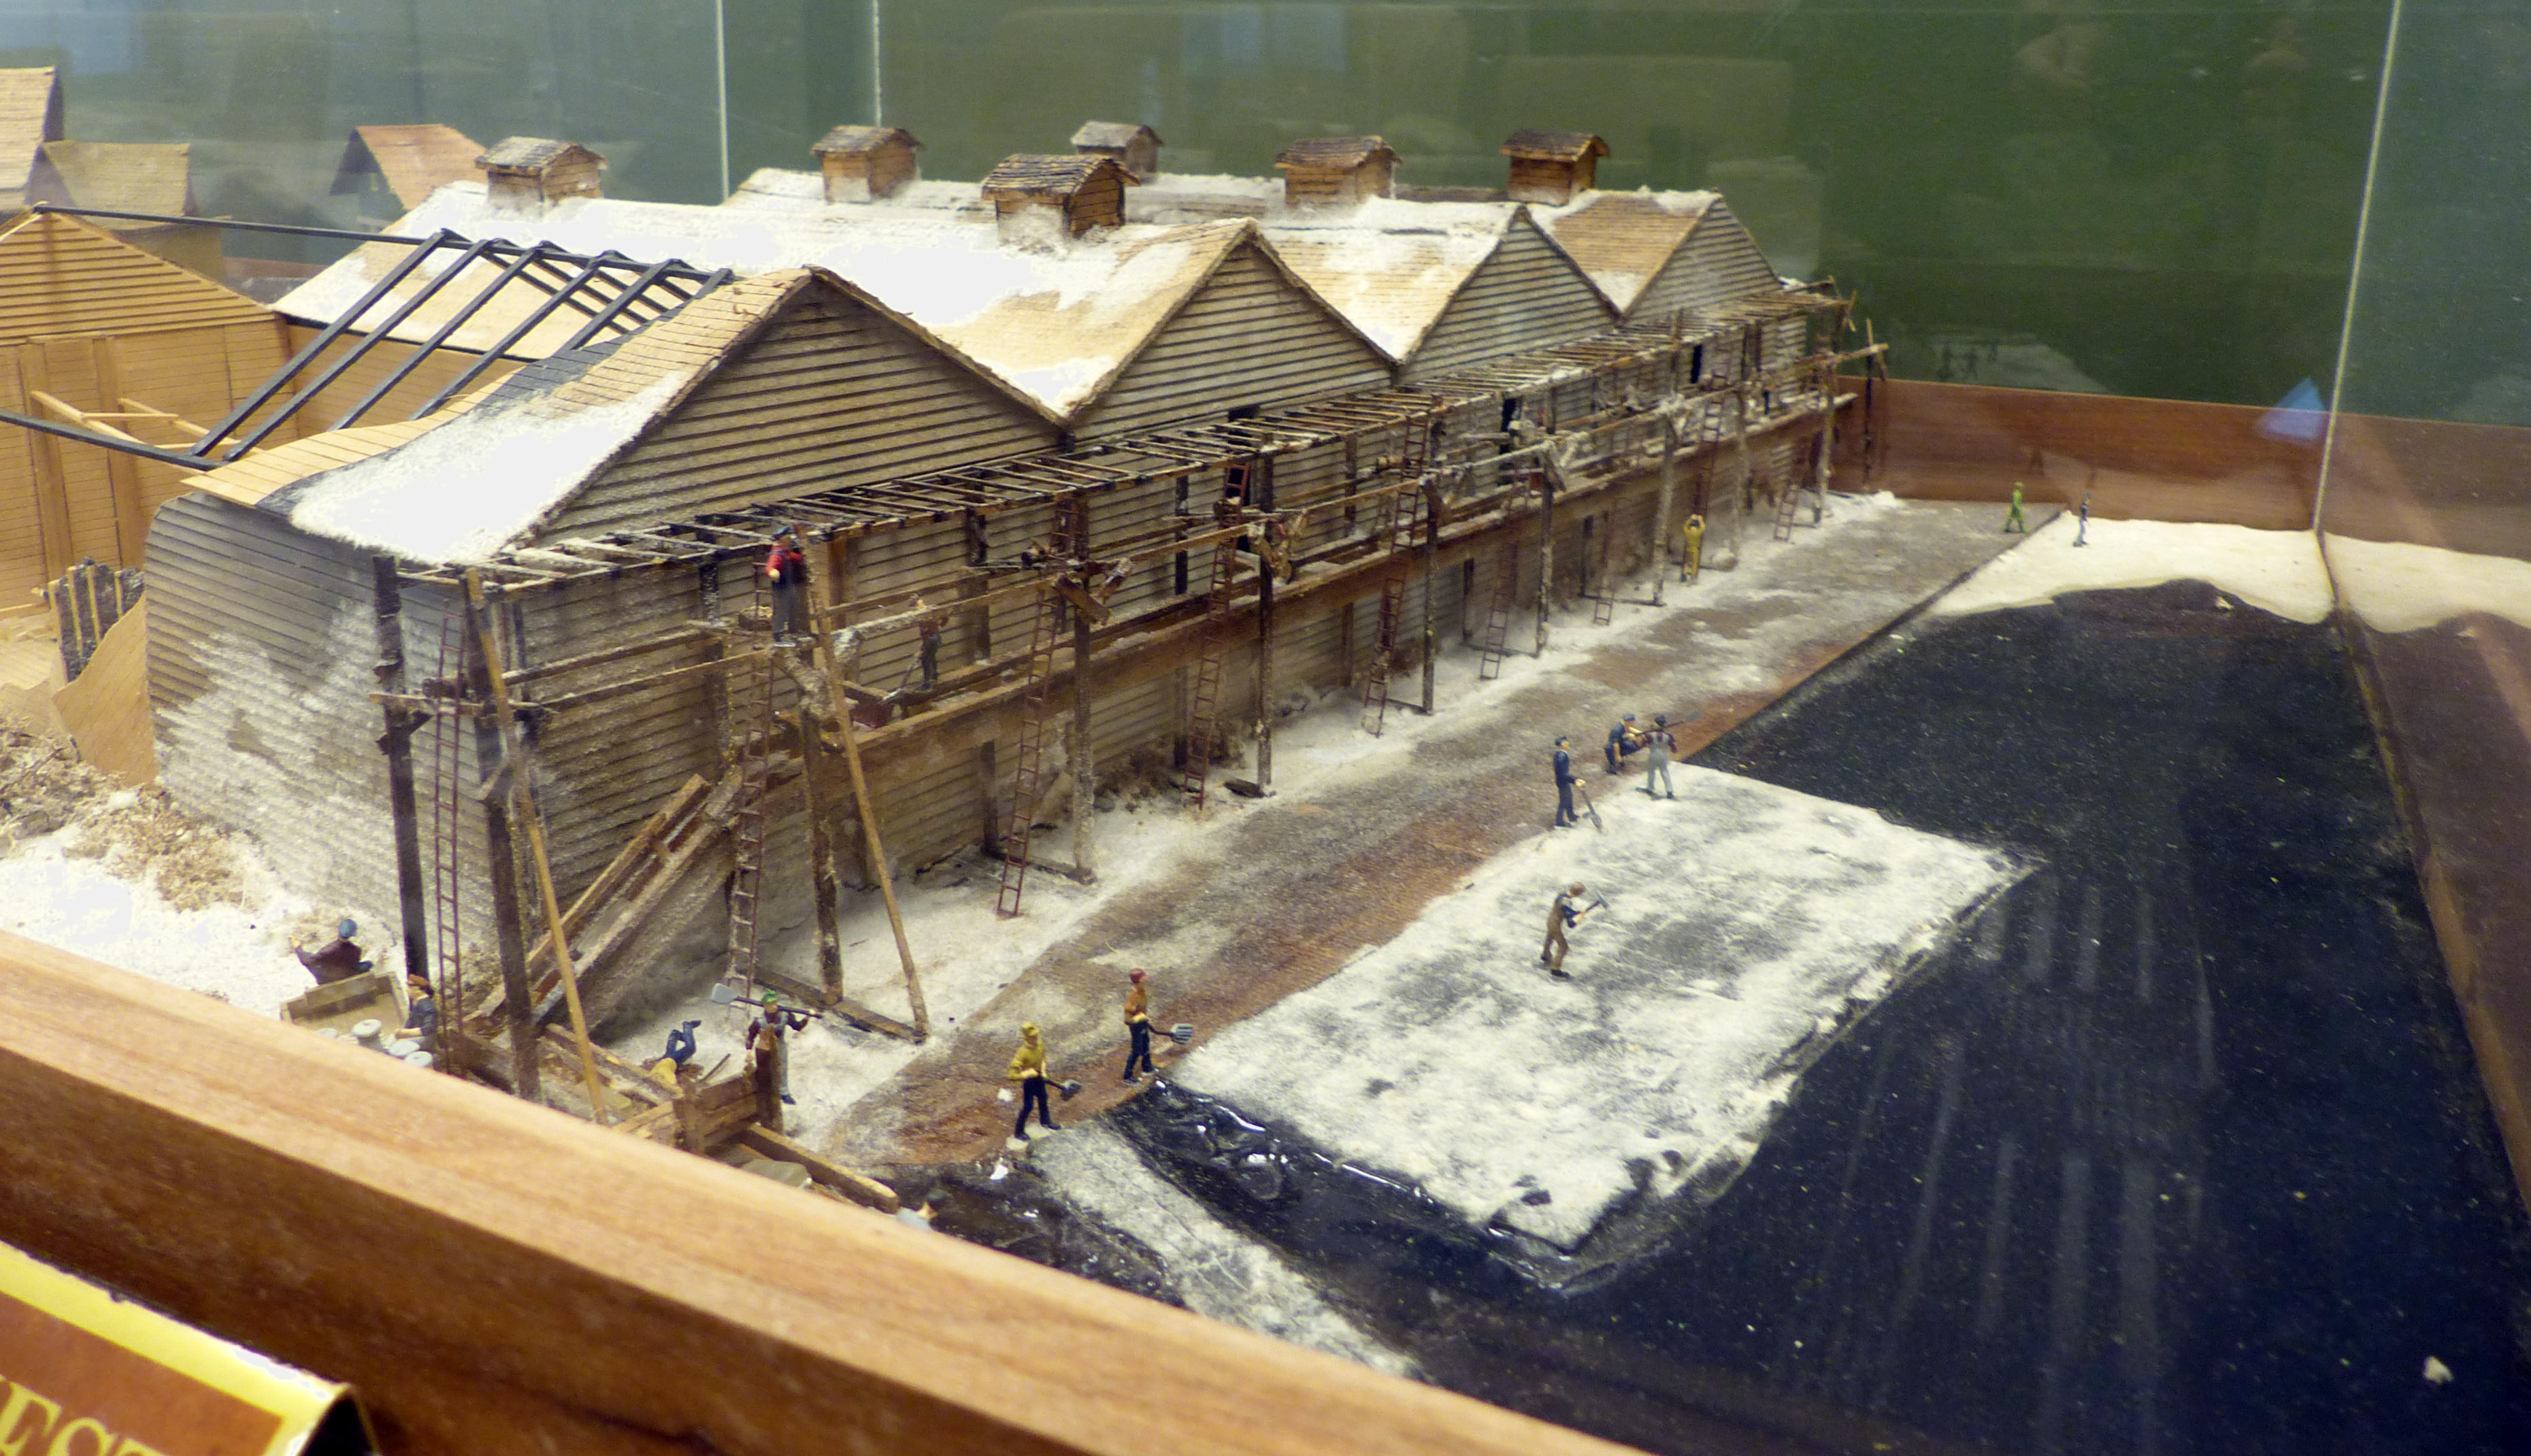 The Ice Harvest Lake Royer<br>Diorama at Fort Ritchie Community Center